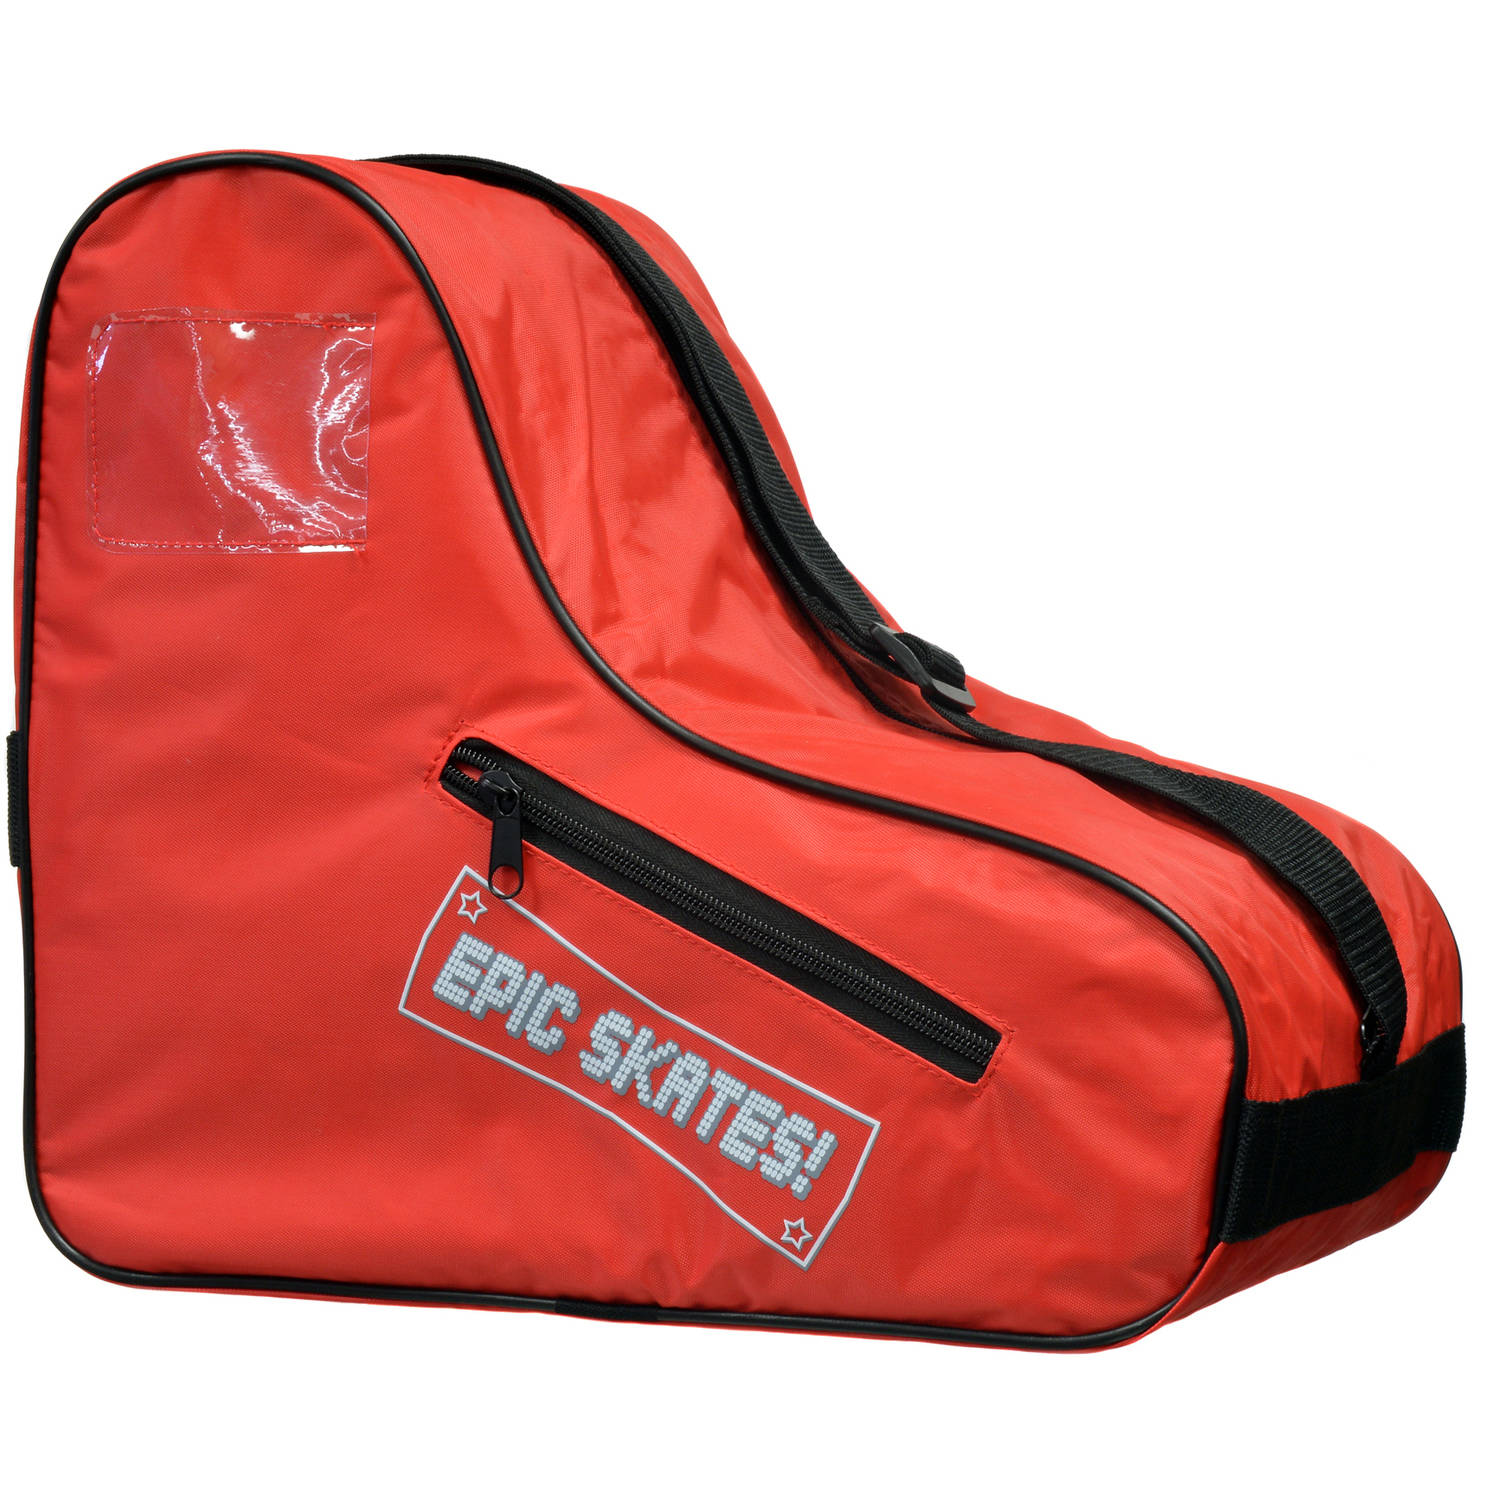 Epic Red Roller Skate Bag by Epic Skates